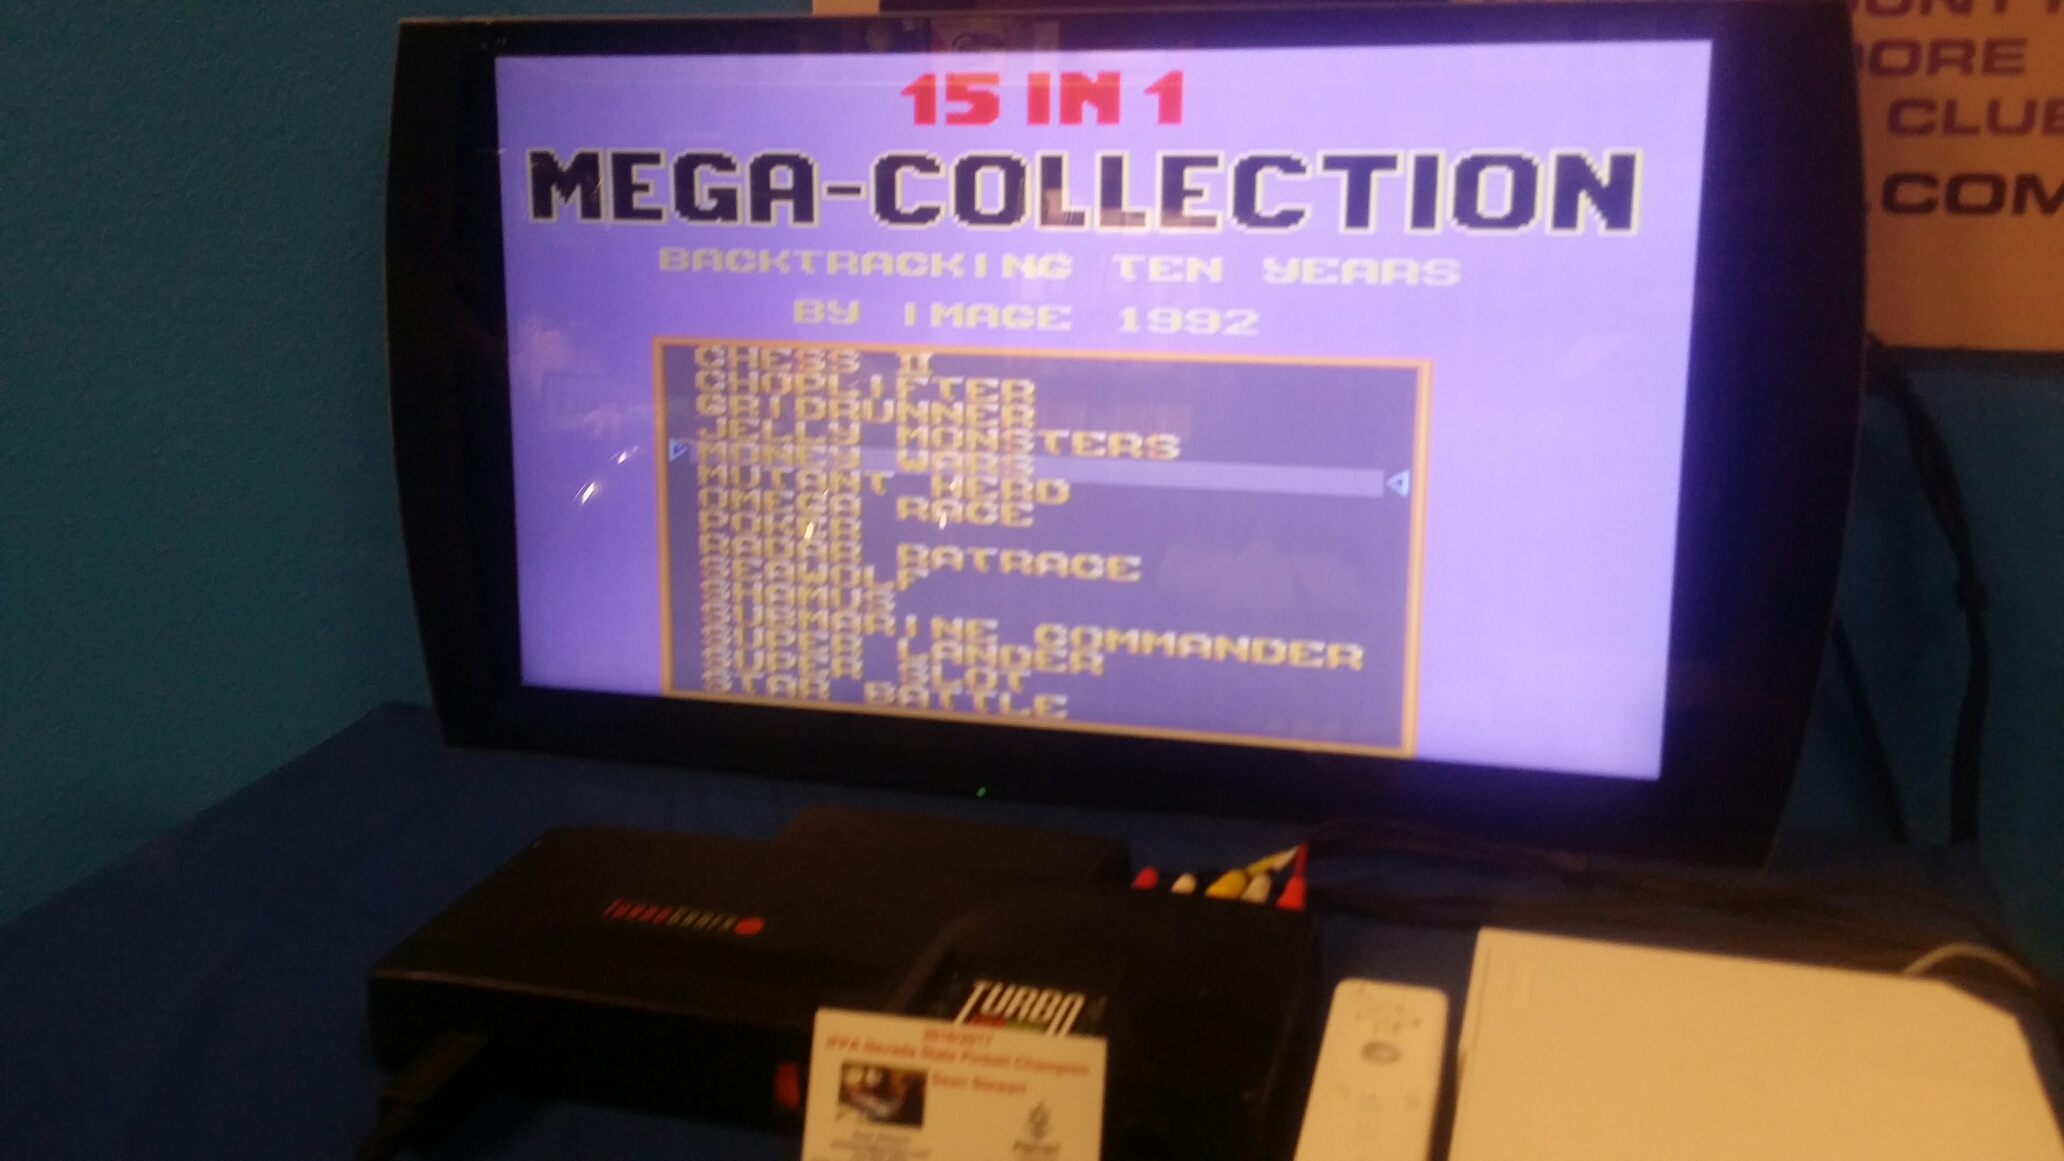 15 in 1 Mega Collection / Money Wars 36,140 points